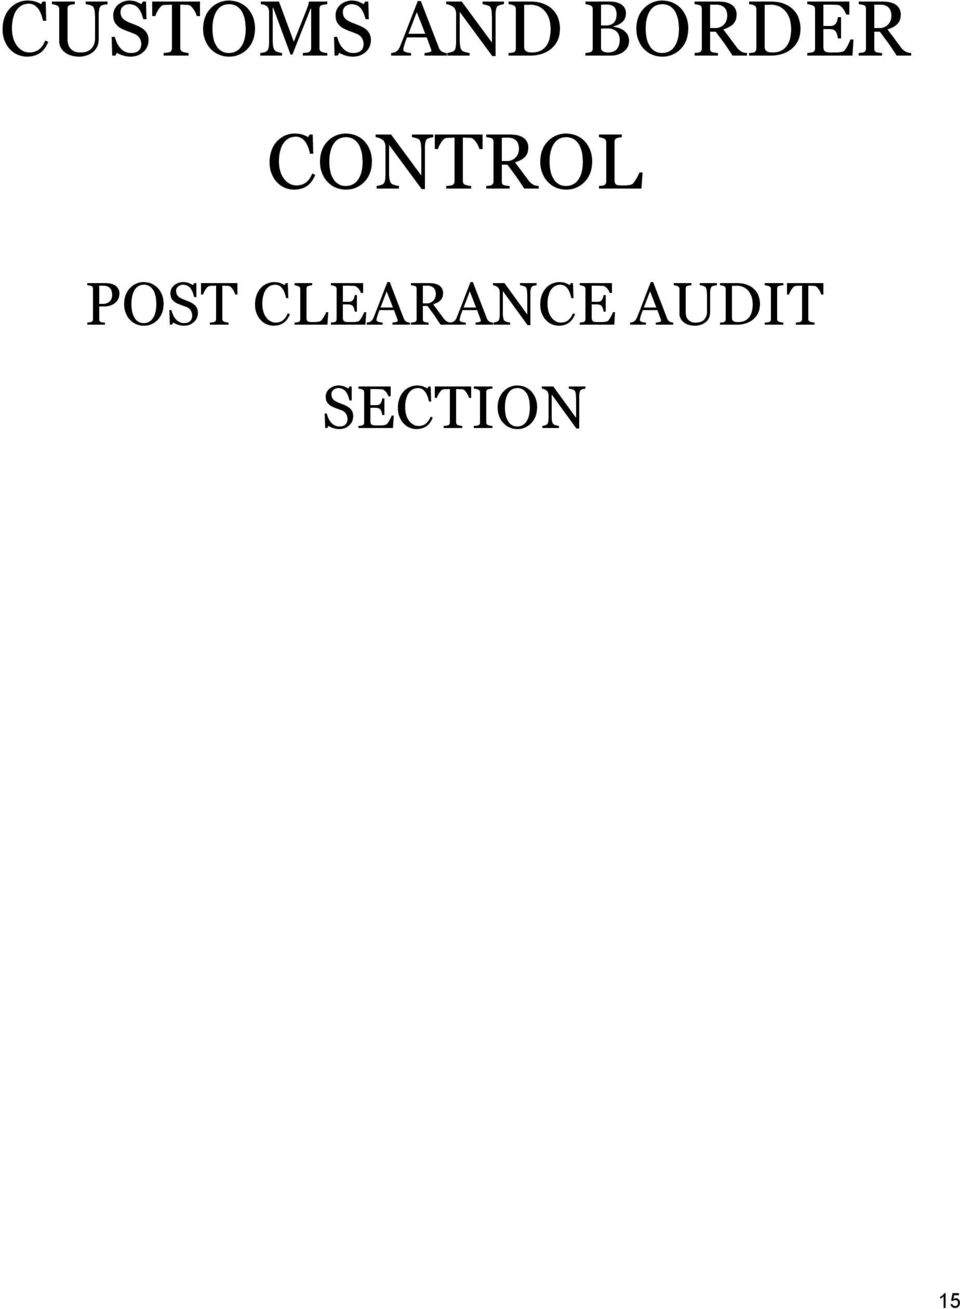 POST CLEARANCE